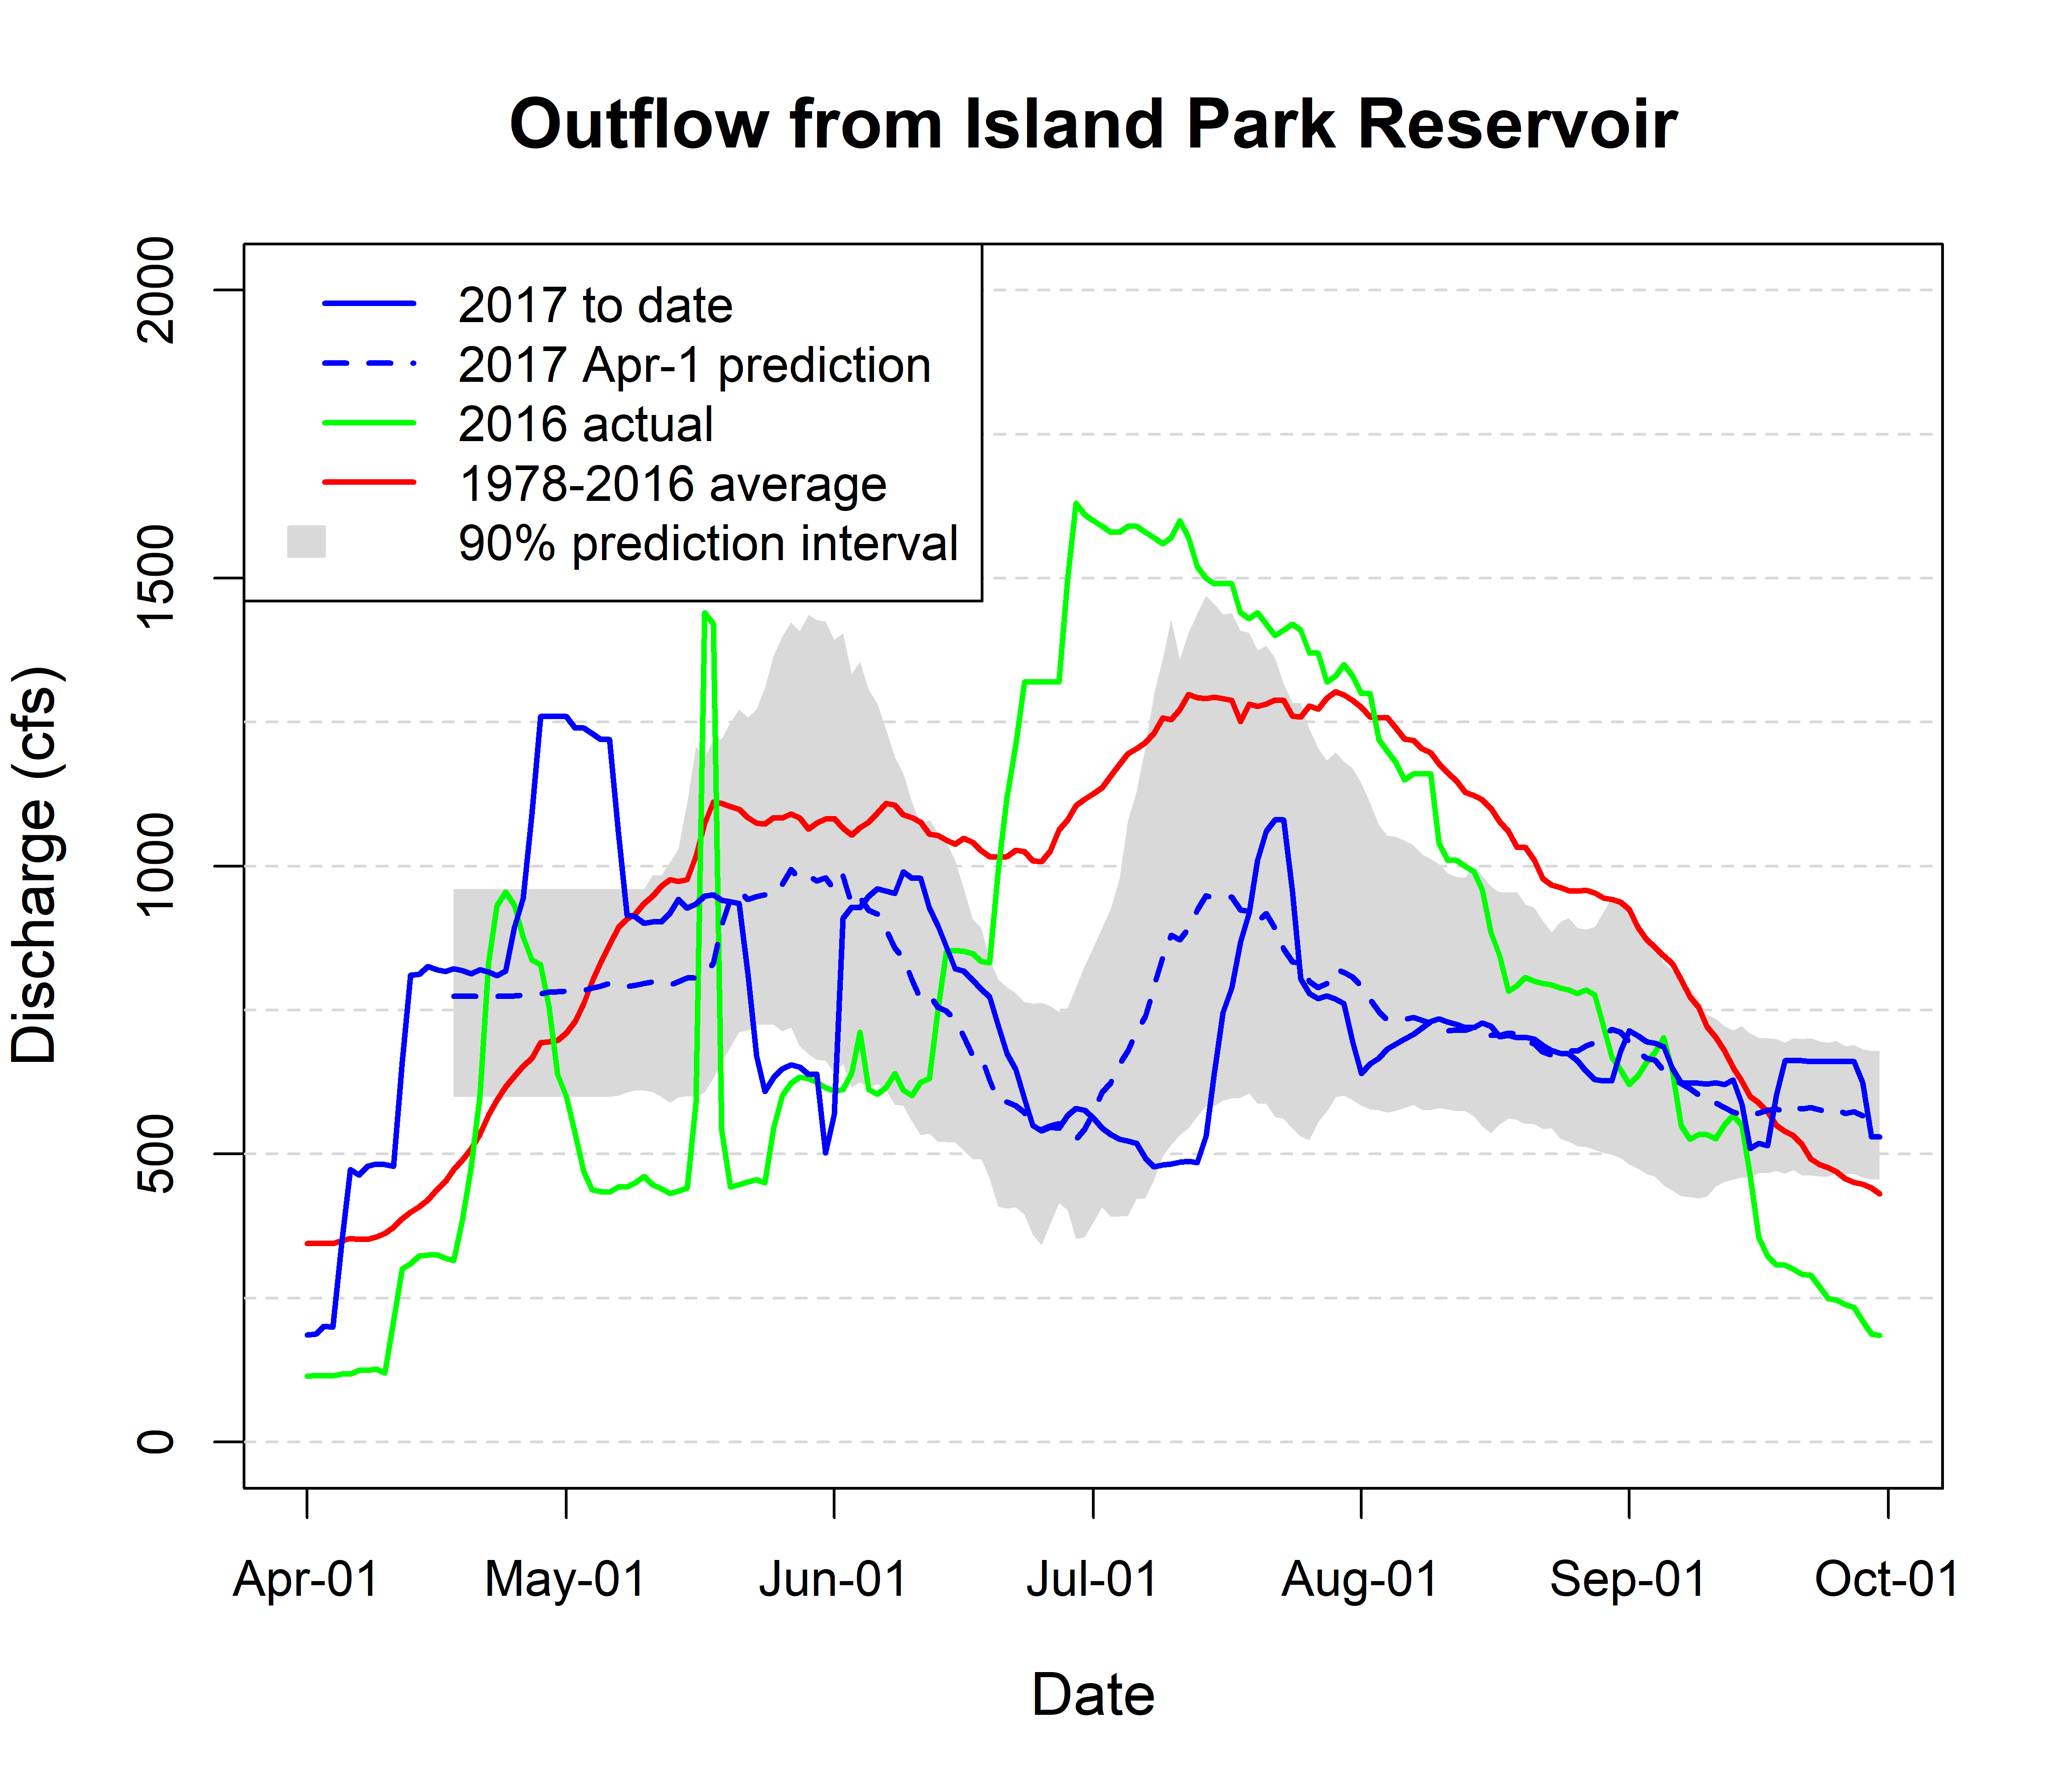 Graph of outflow from Island Park Reservoir.